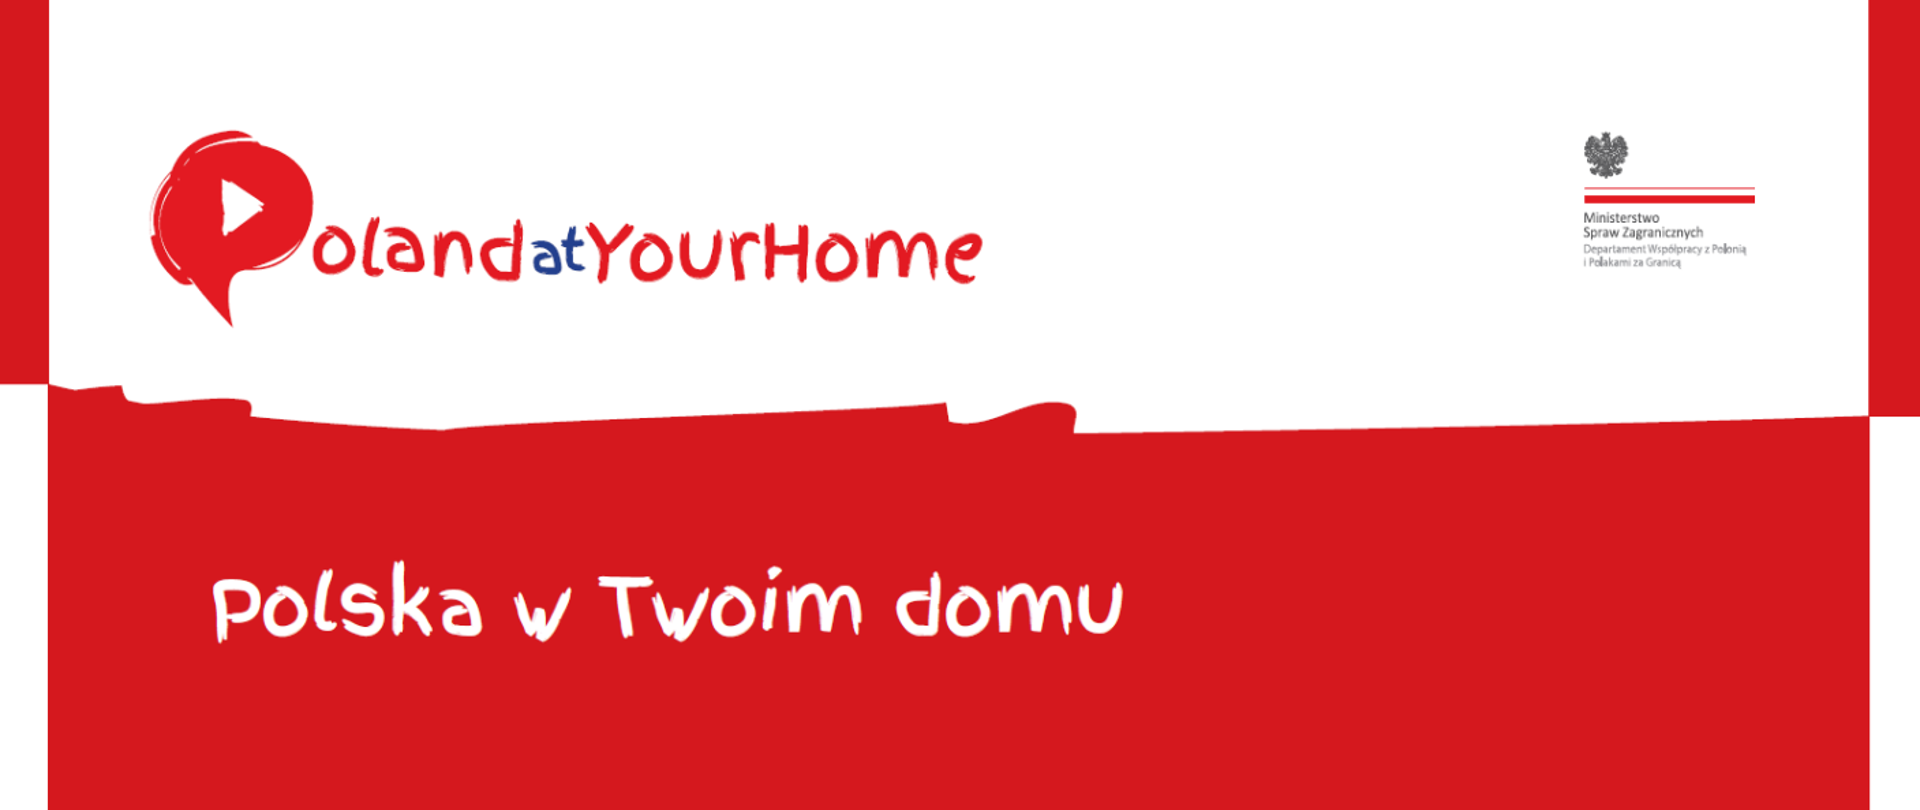 Poland at your home